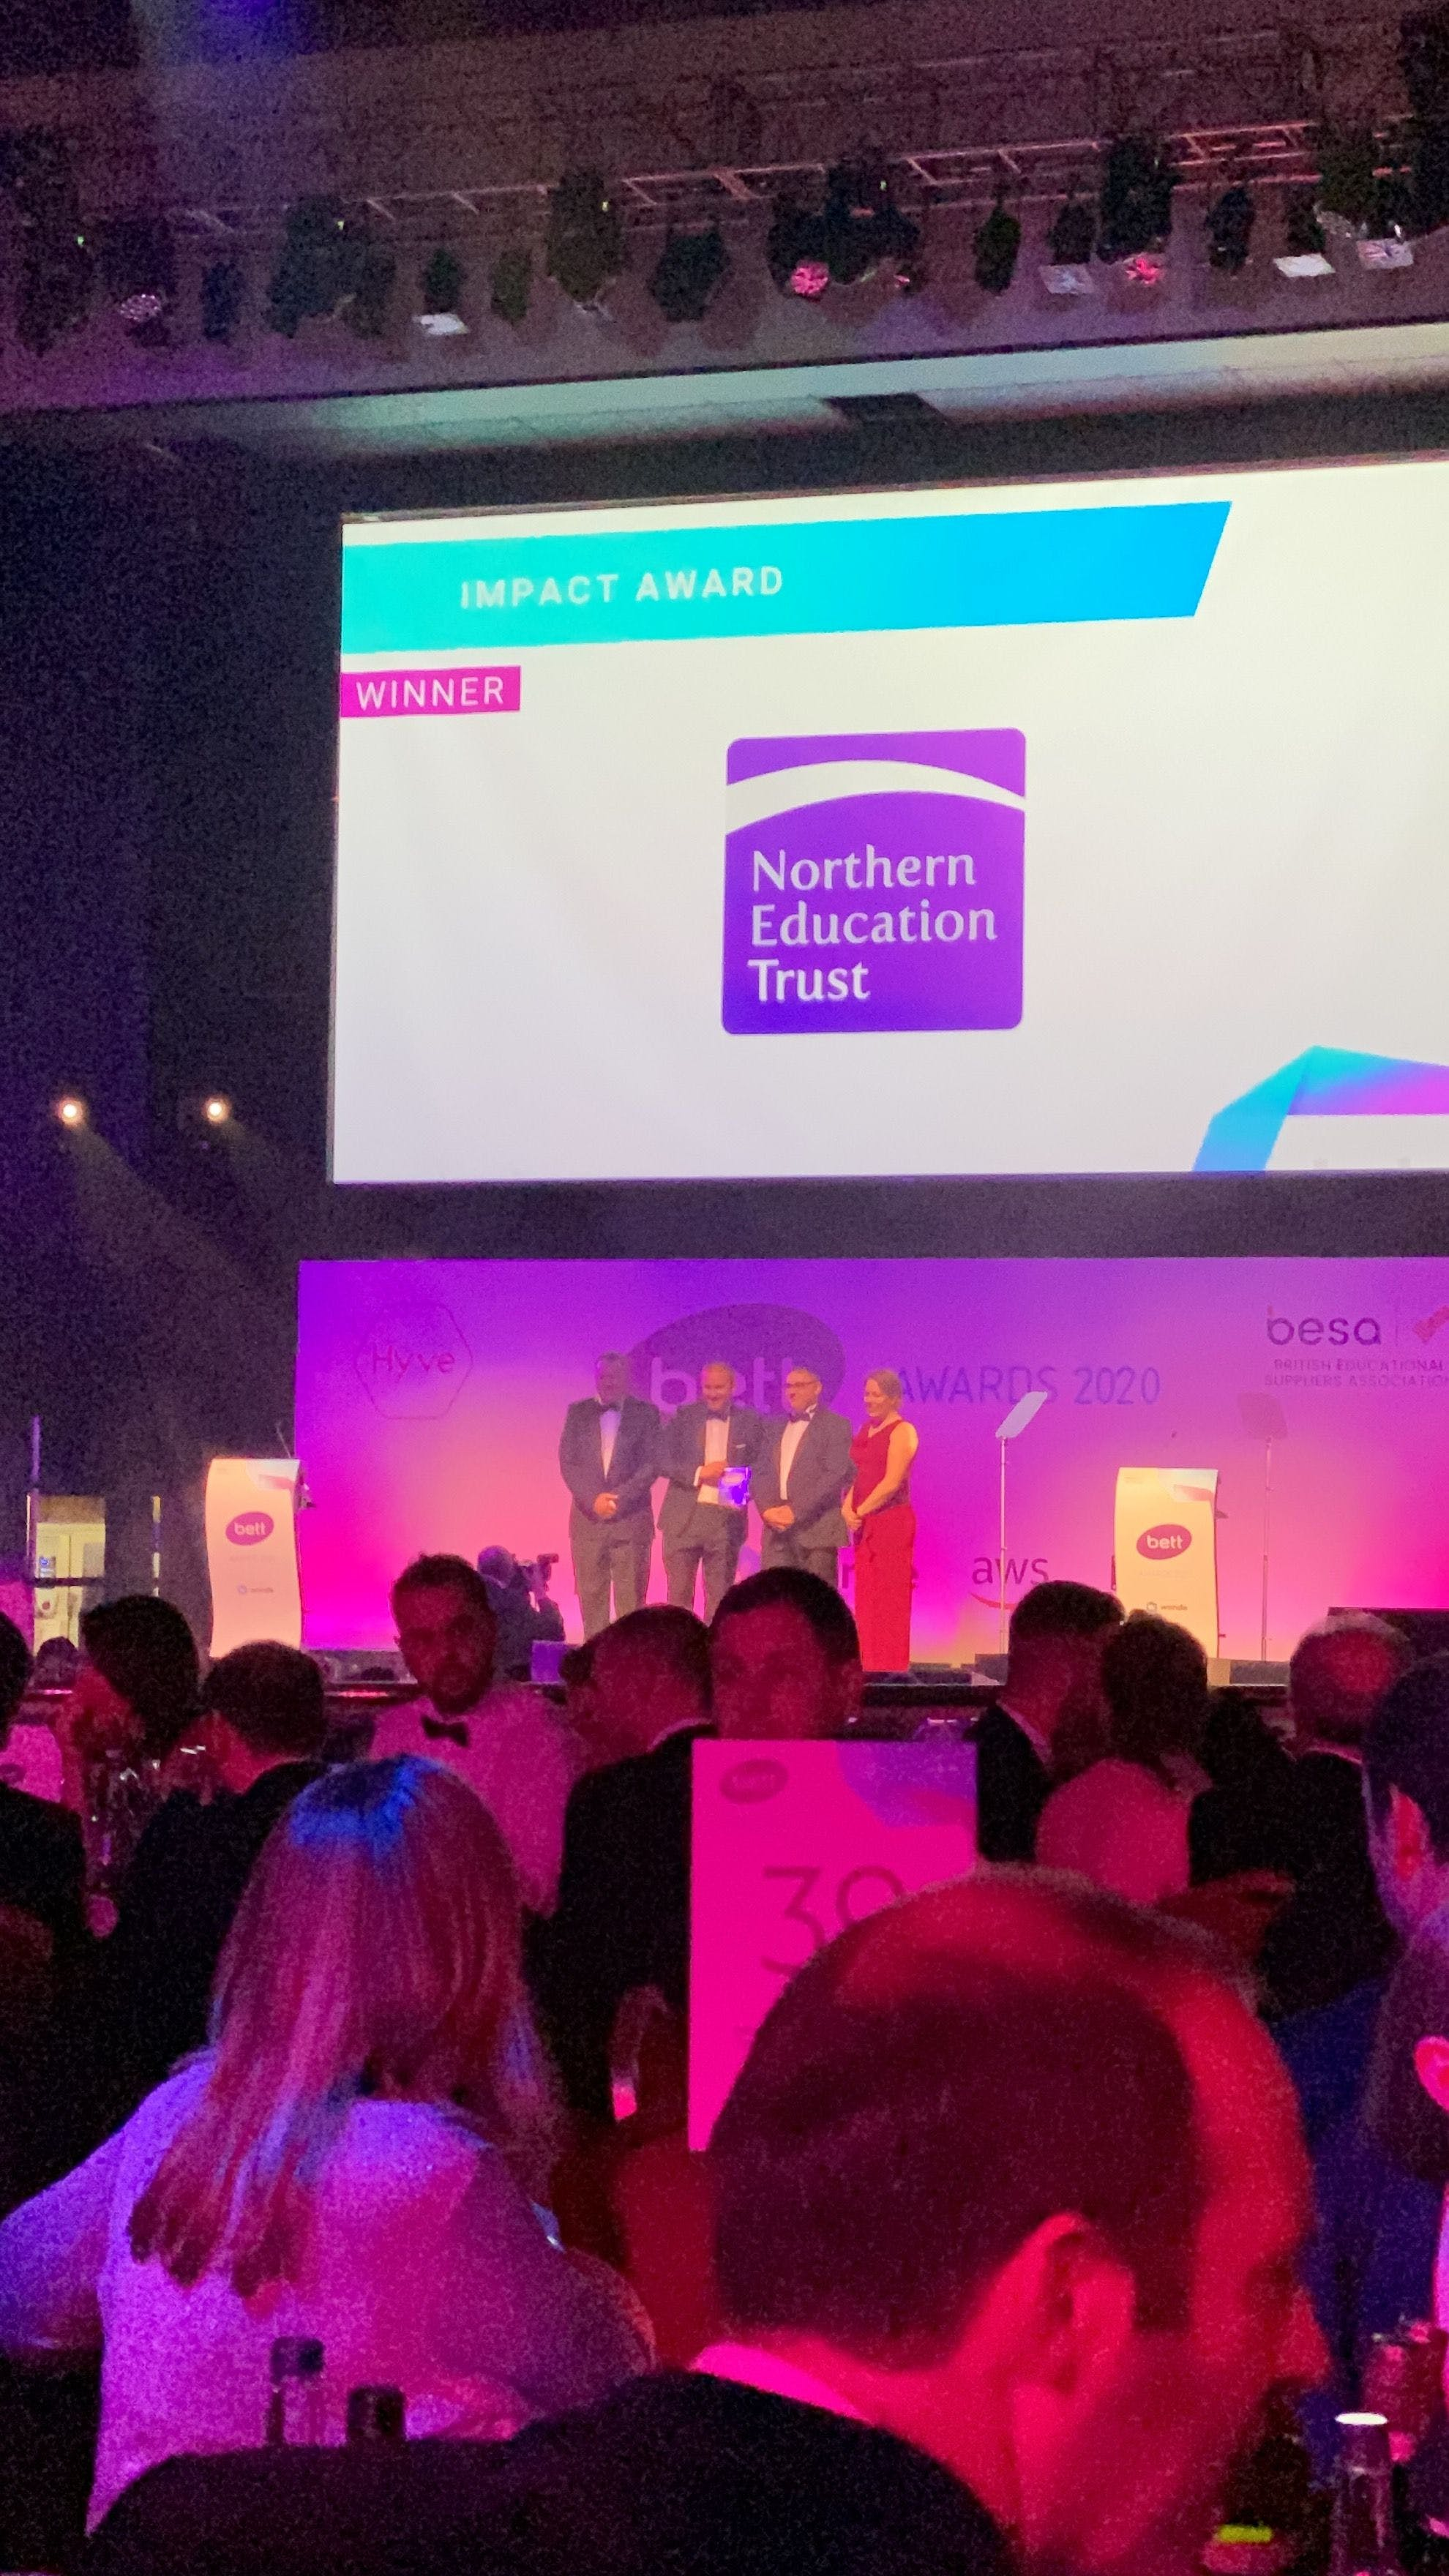 northern education trust wins impact award at bett show awards 2020 for their work with single central record tracker SCR register online software for vetting checks and best safeguarding practices in UK based trusts Bett finalists SCR Tracker wins highly commended for leadership and management solutions